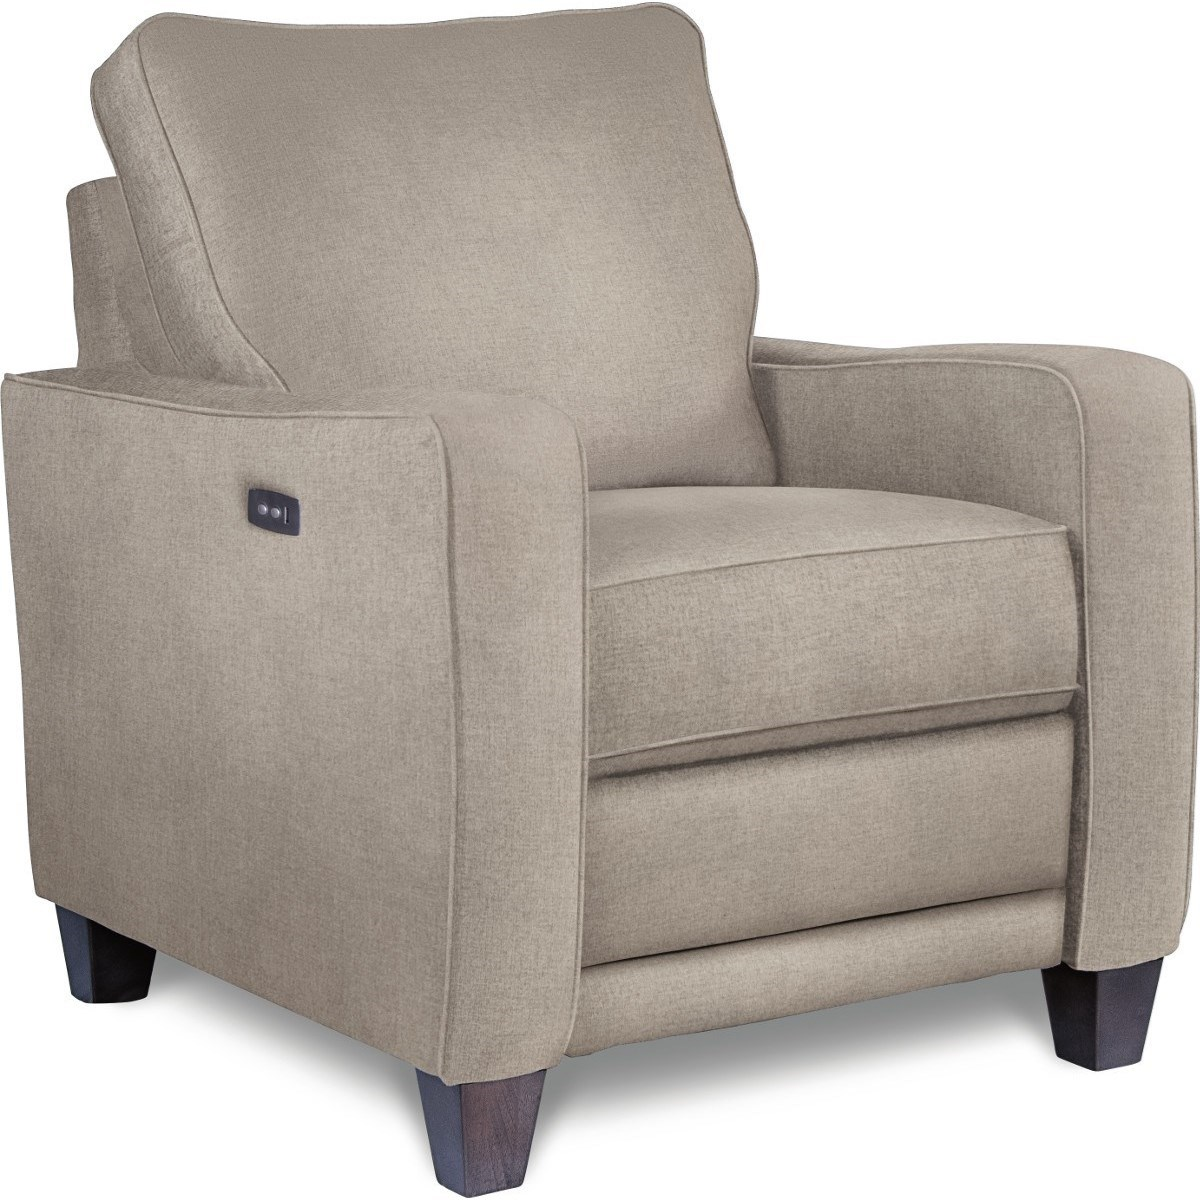 Makenna Duo™Reclining Chair by La-Z-Boy at Adcock Furniture